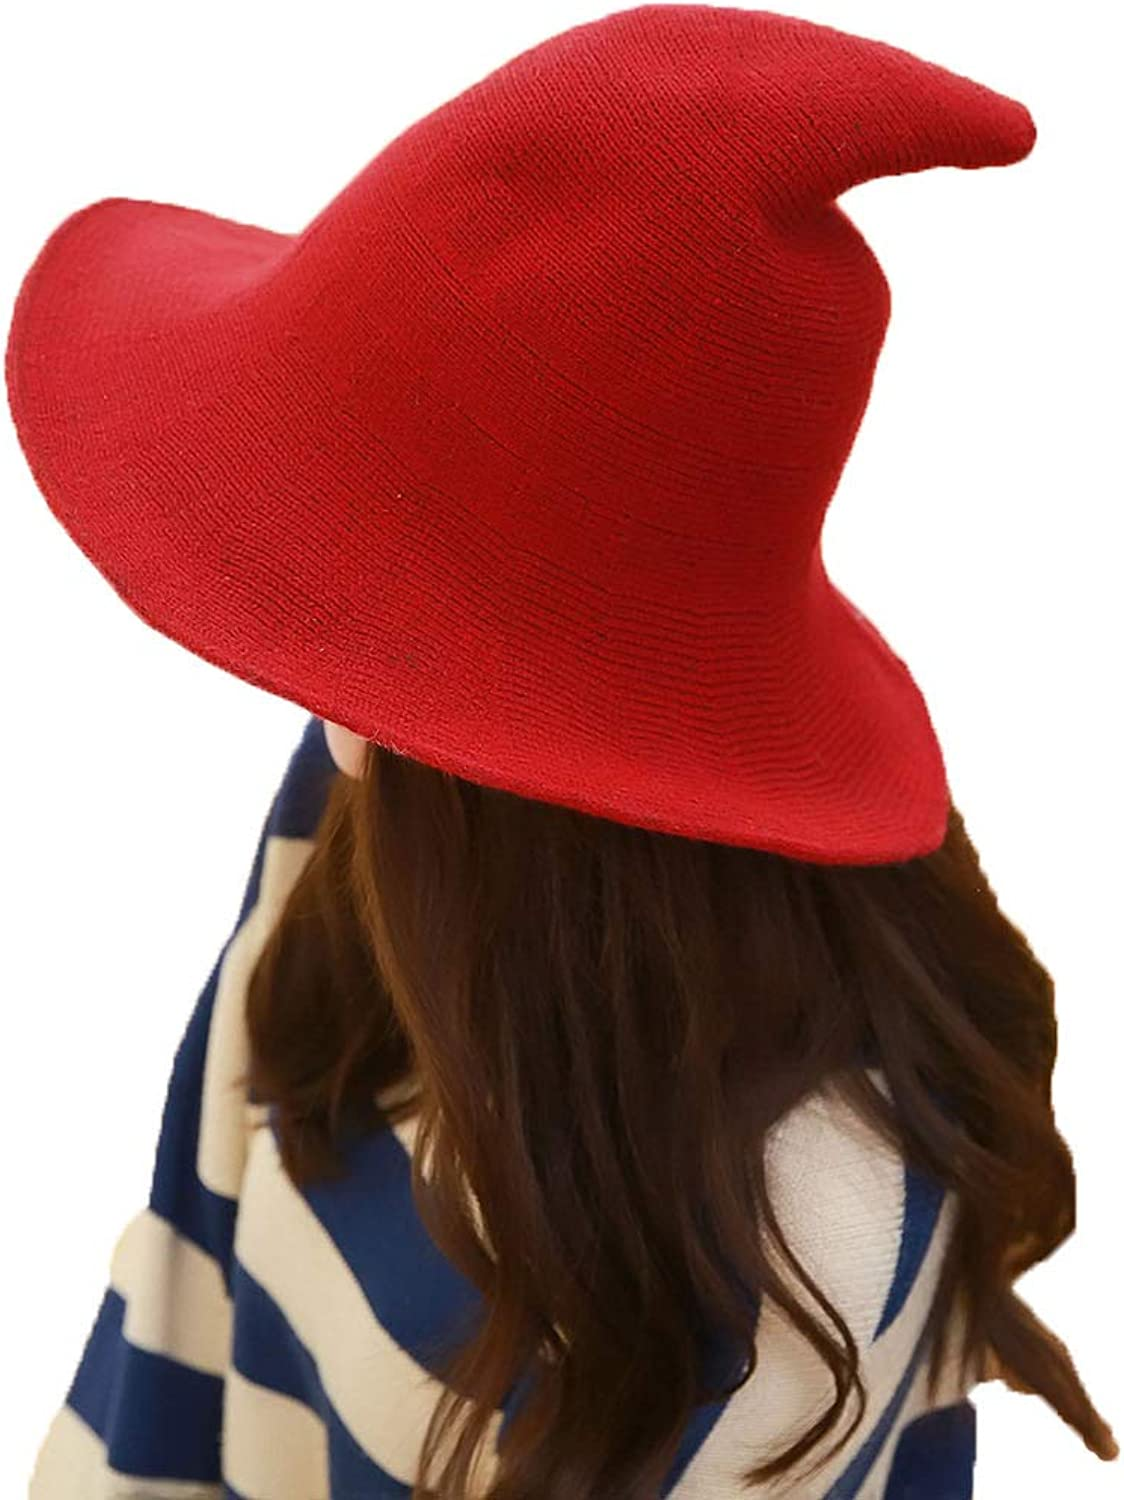 mettime US Womens Fashions Cute Wool Big Brimmed Witch Pointed Hats Knitted Wizards Solid Color Bucket Cap